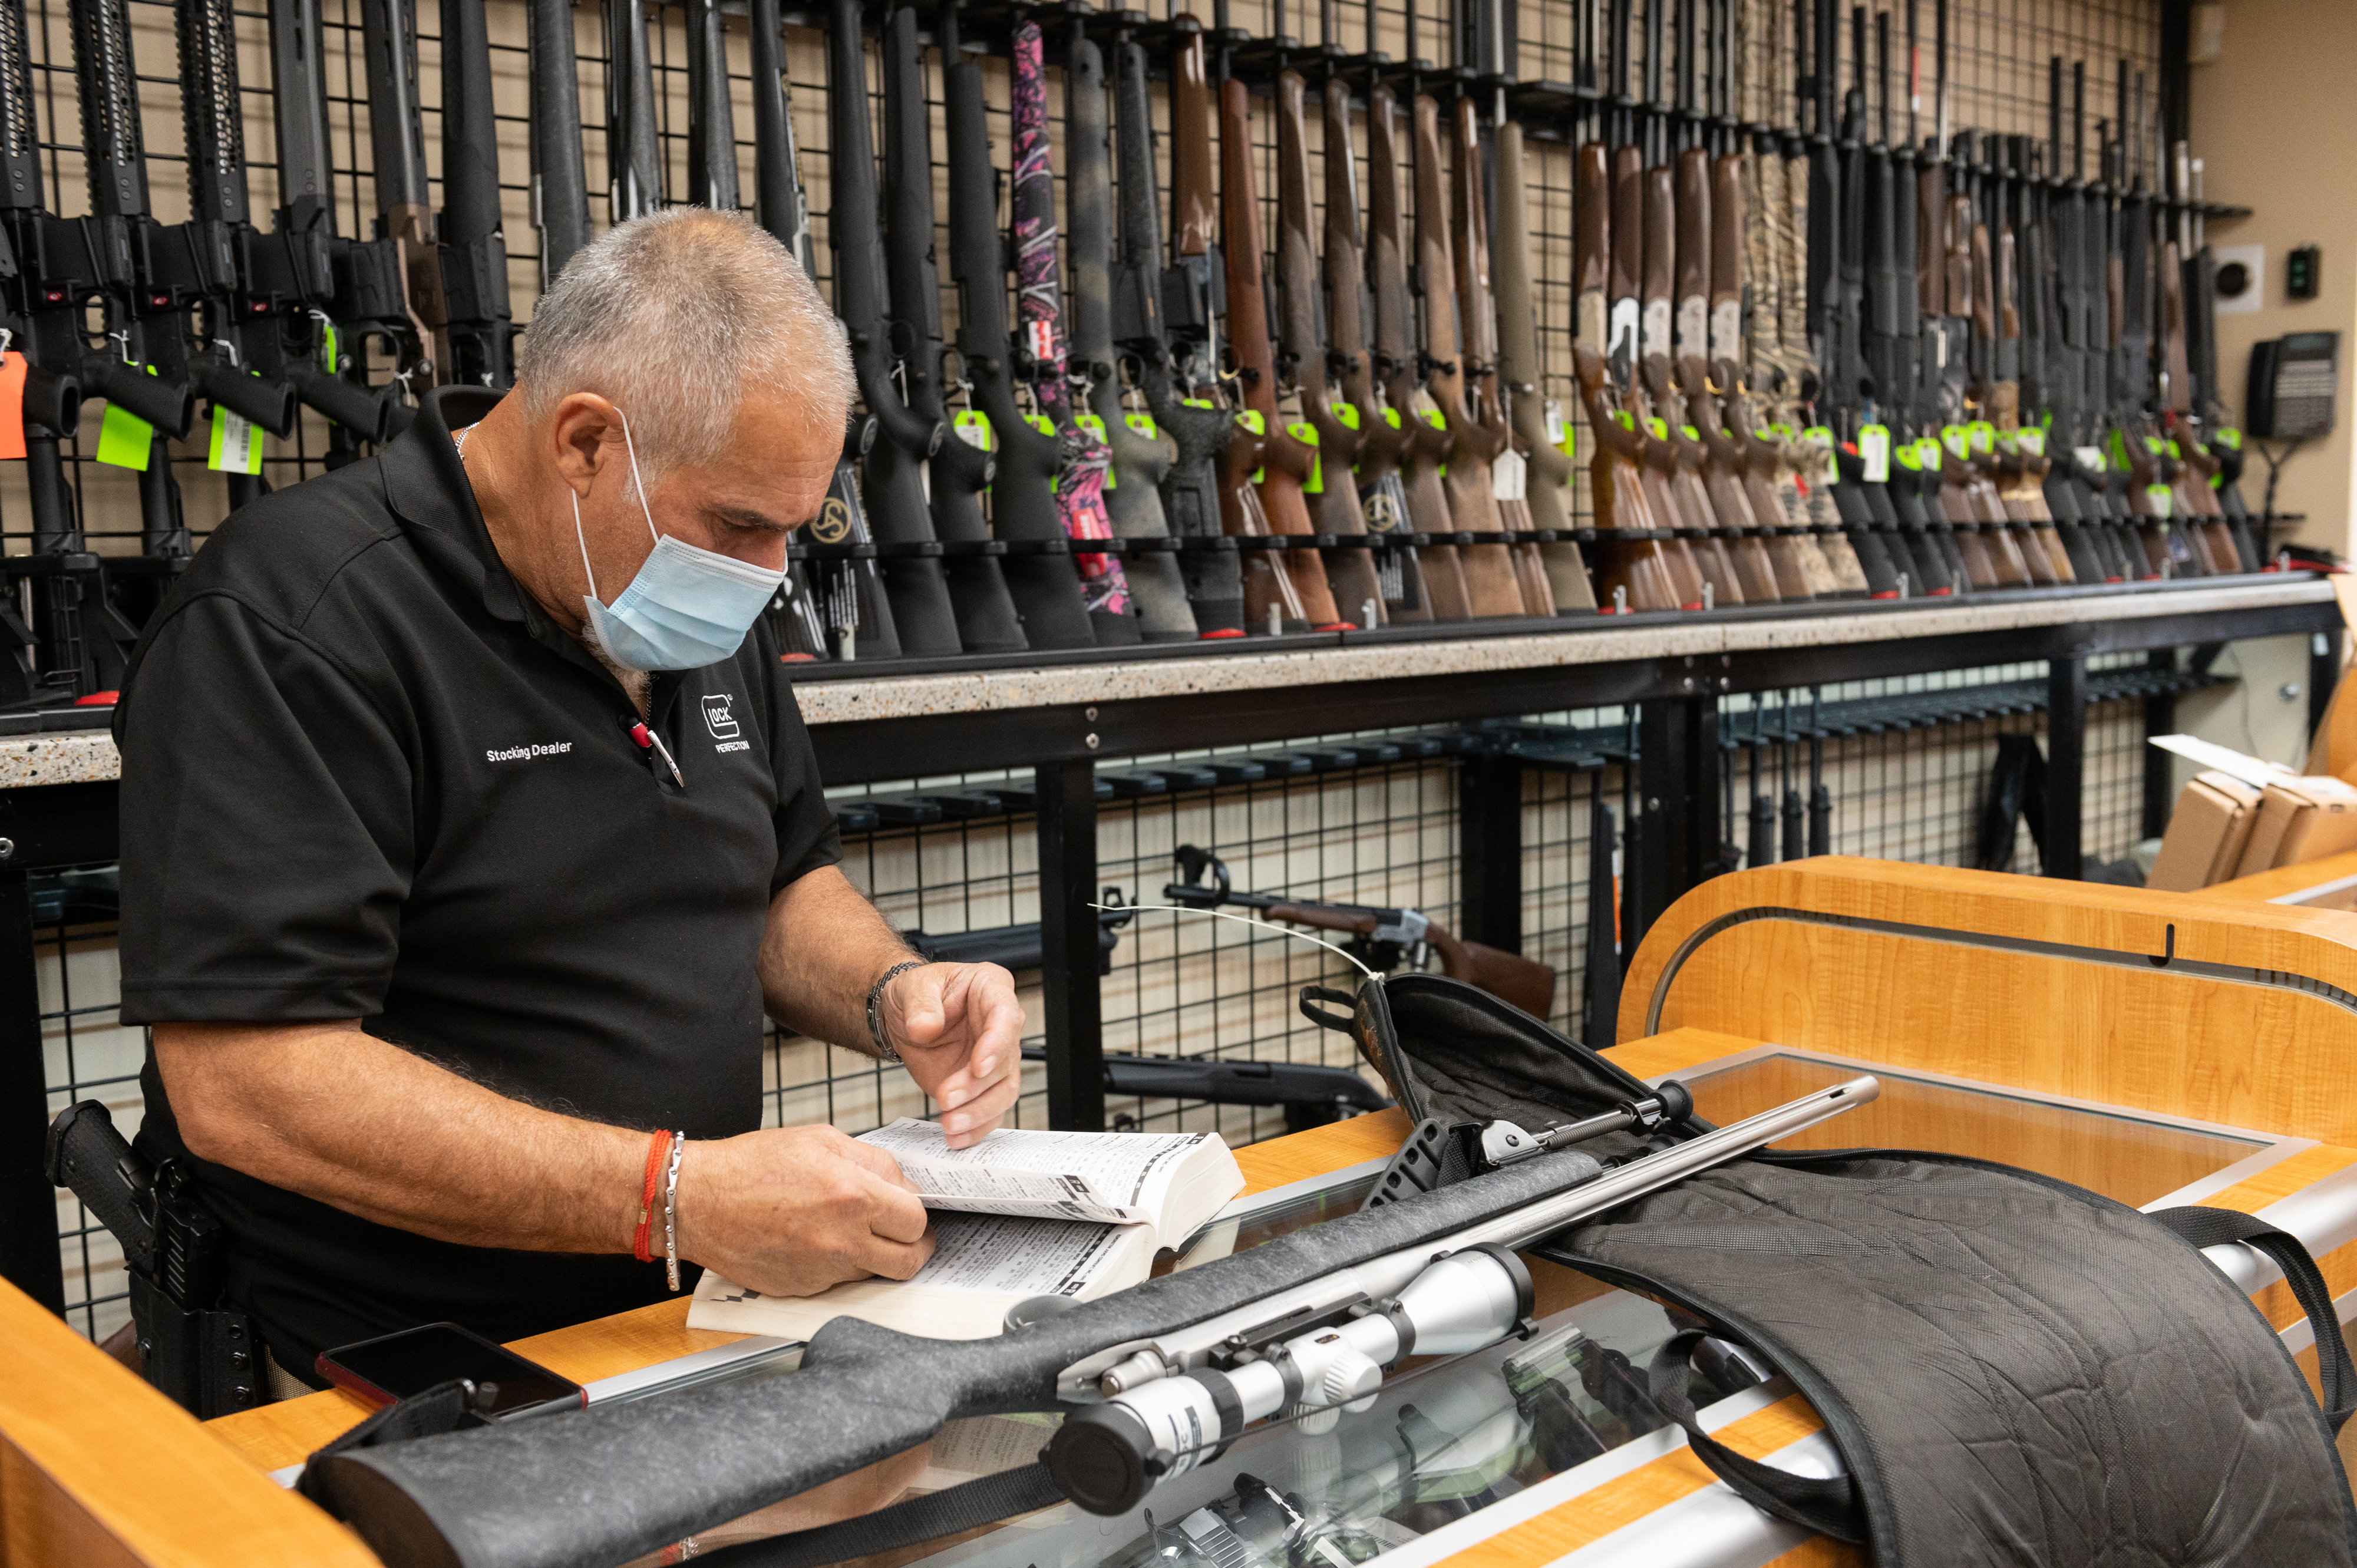 Brownells, Inc. Co-Chairman Pete Brownell says there's been an 'unbelievable demand' for guns in recent months.